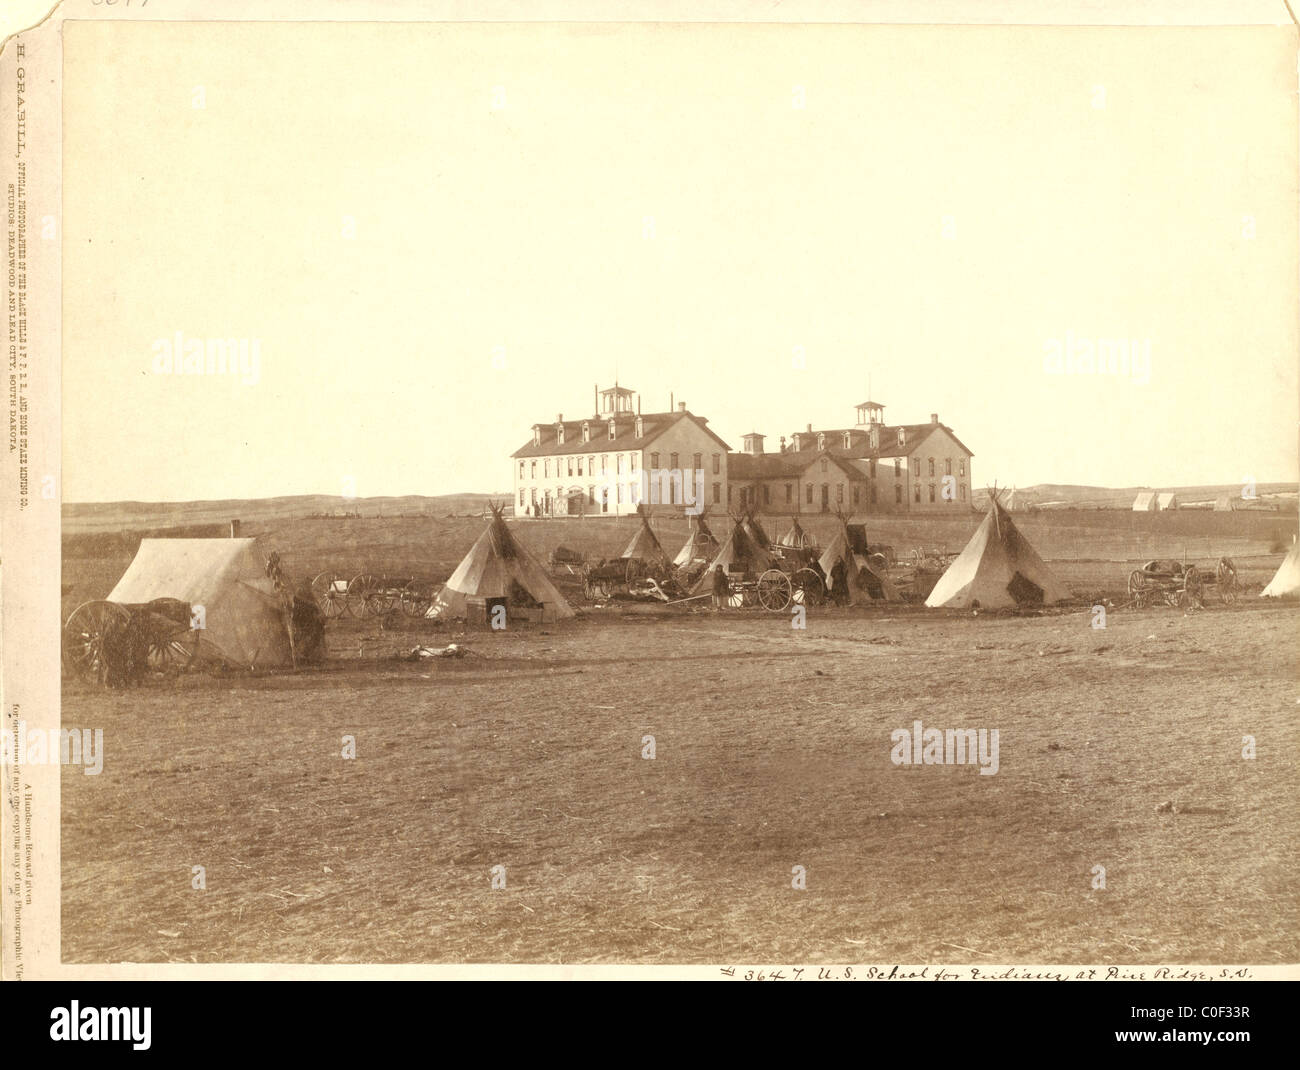 U.S. School for Indians at Pine Ridge, South Dakota with  Small Oglala tipi camp in front 1891 Stock Photo